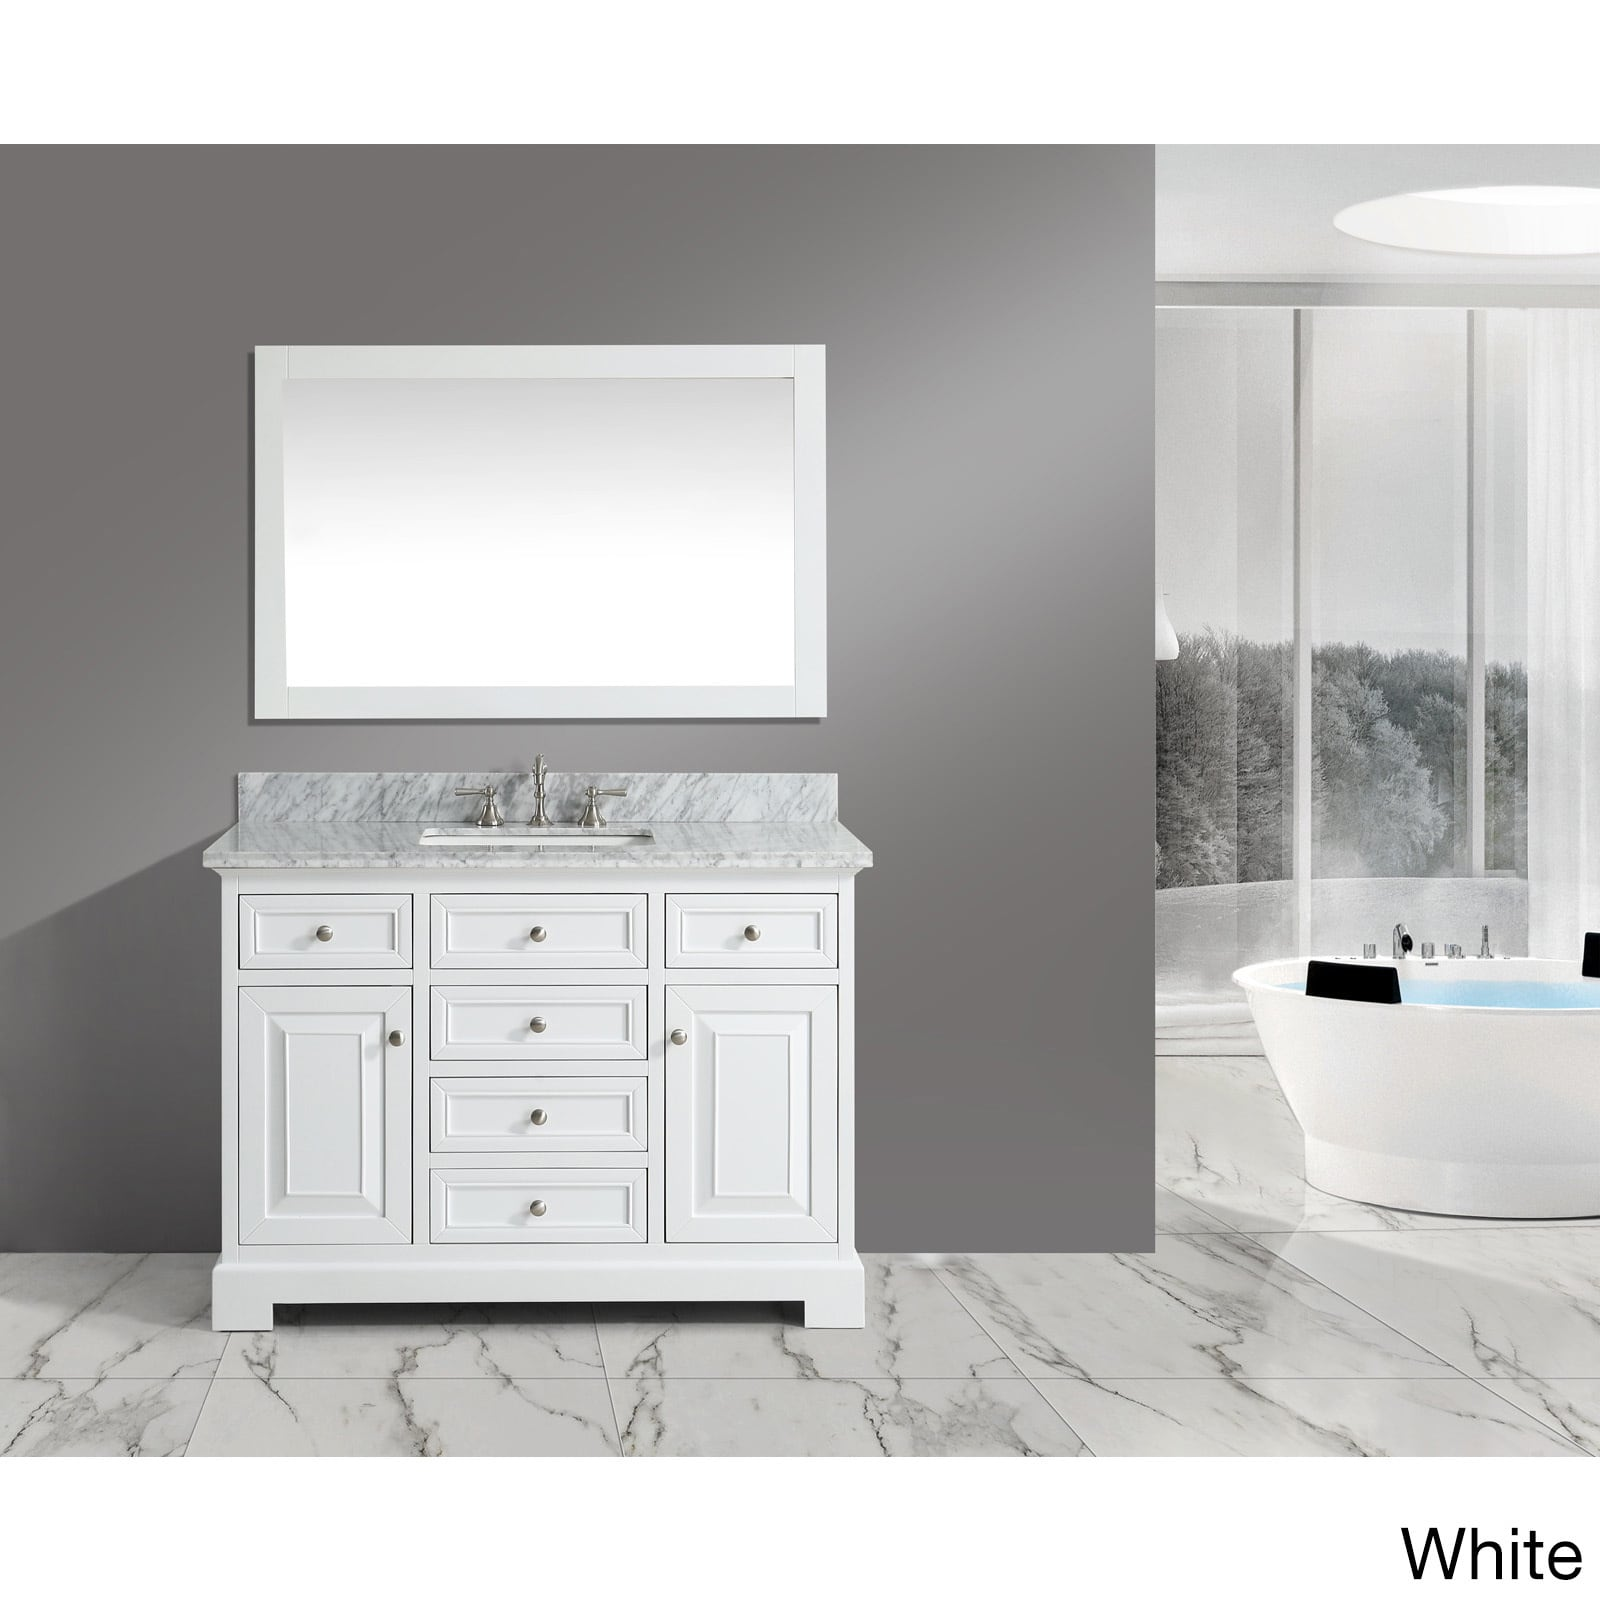 Shop rochelle white grey marble wood 48 inch bathroom sink vanity set free shipping today overstock com 13109566